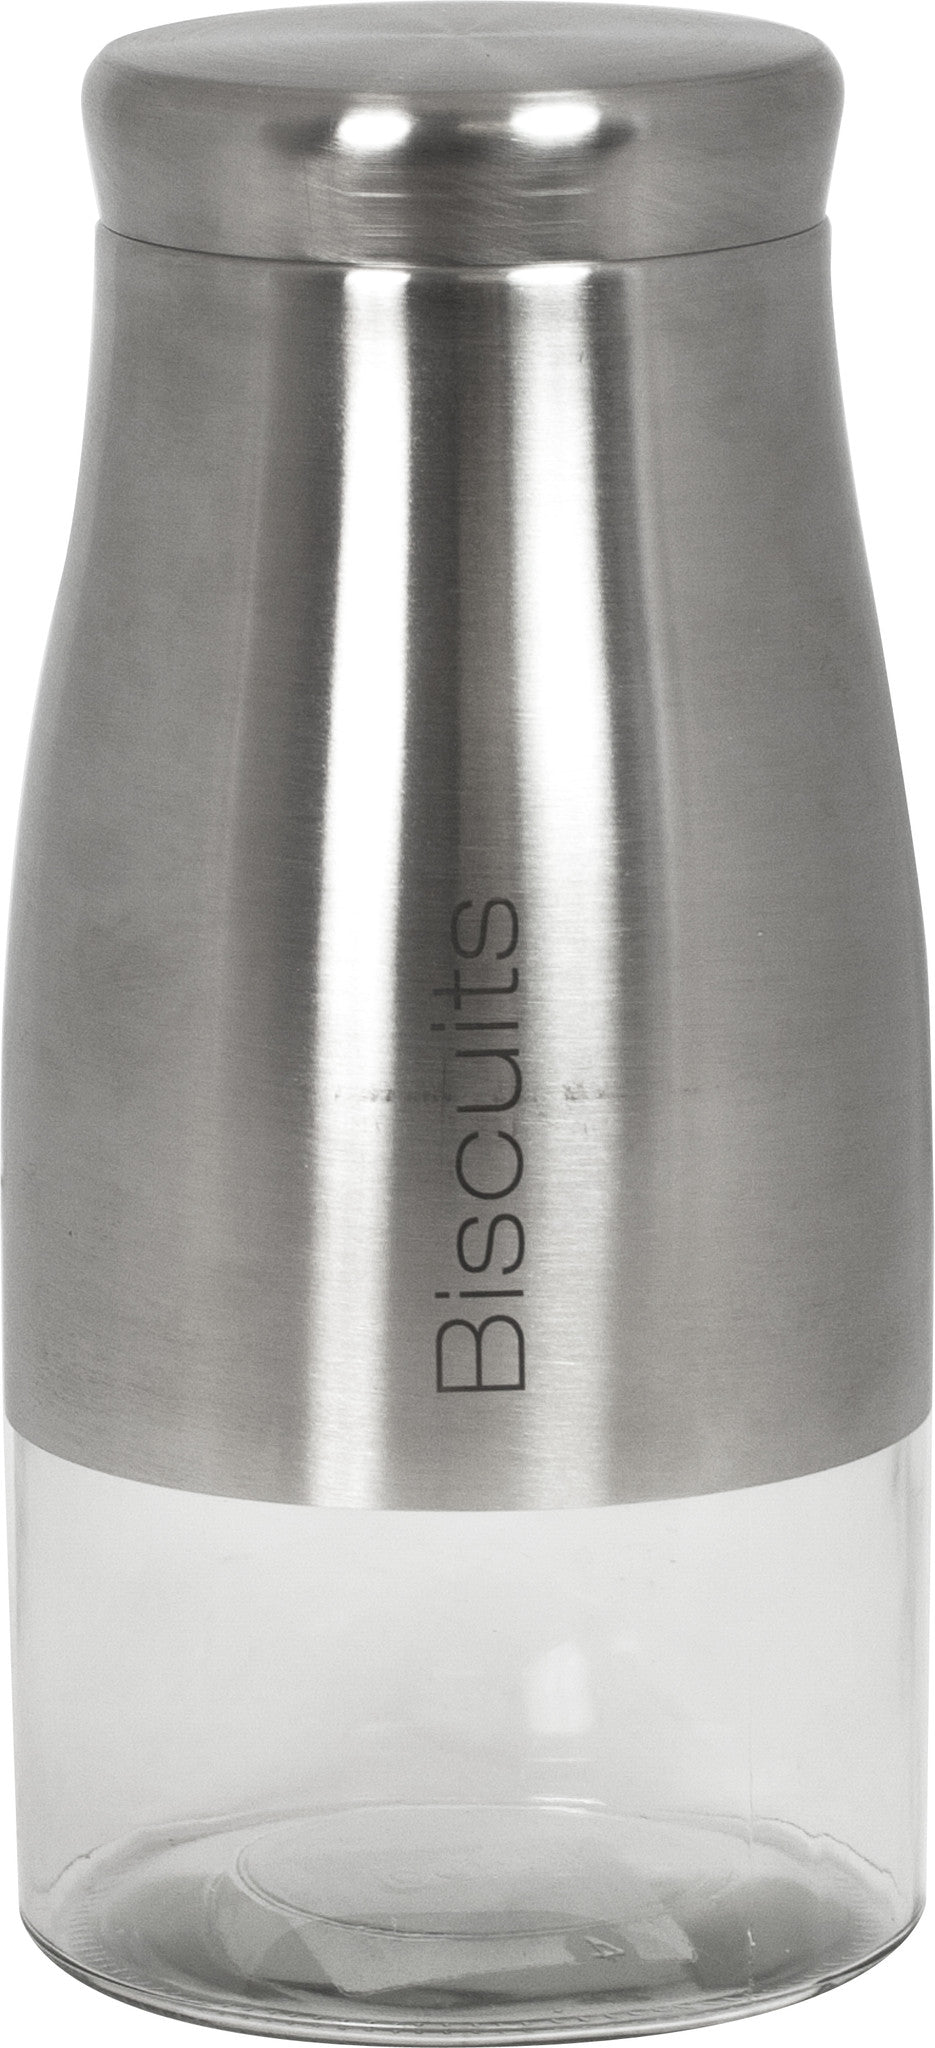 Sabichi Stainless Steel Biscuit Jar-102560 - Homely Nigeria